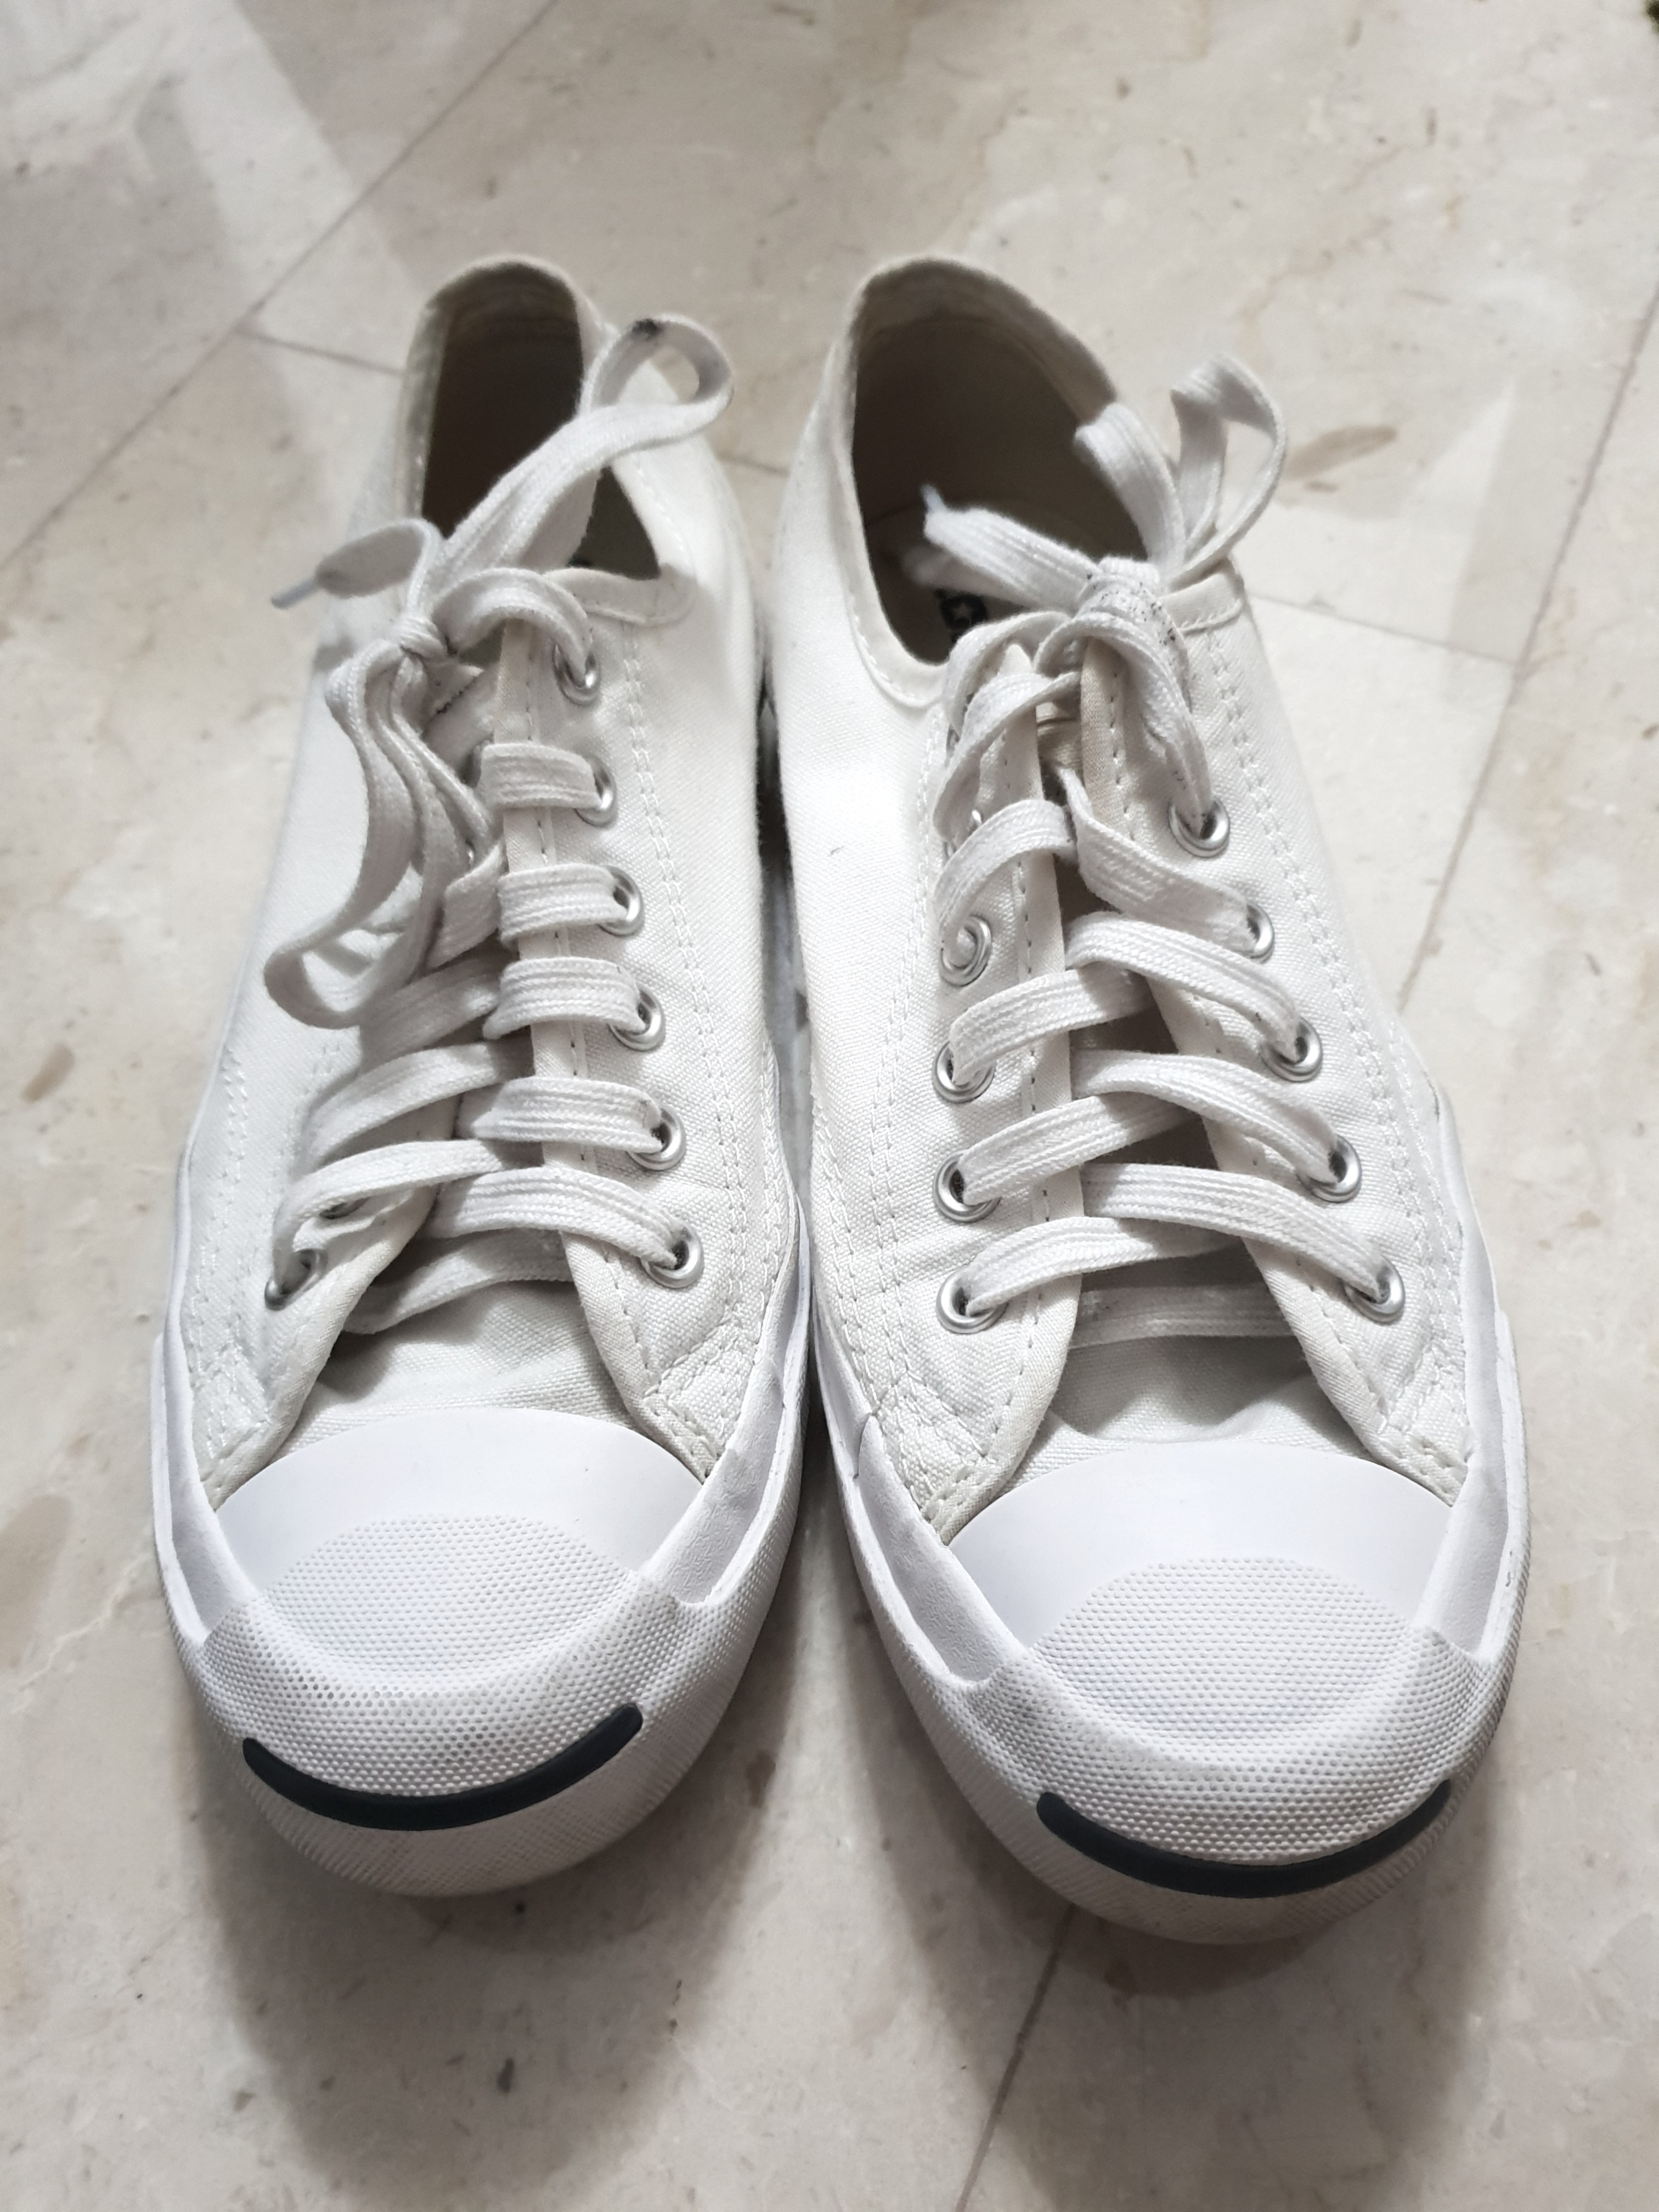 74a47f221f50 Converse Jack Purcell s in White Canvas